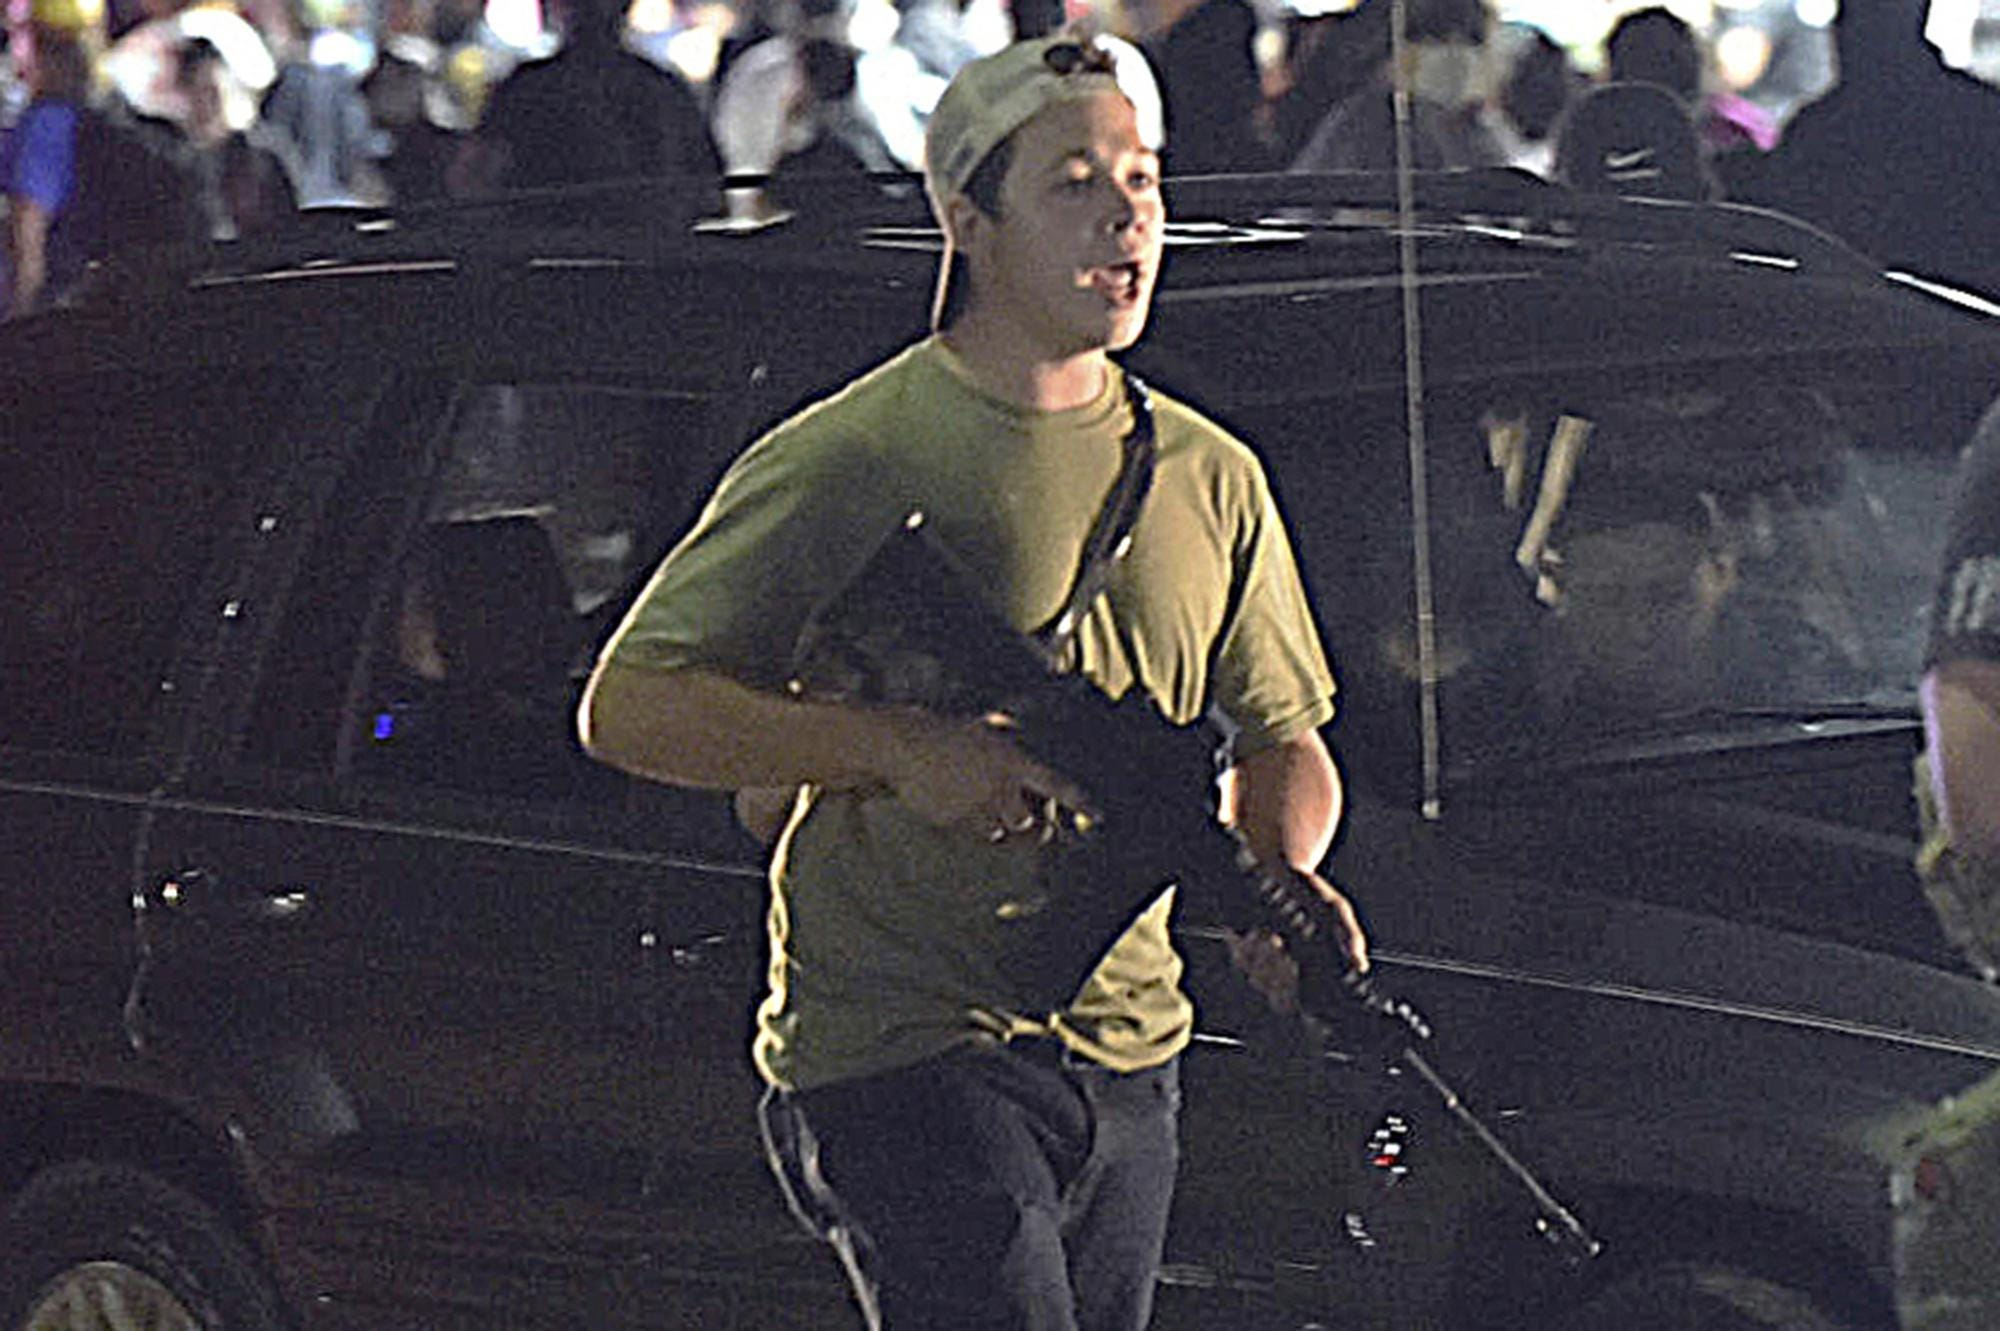 Friend who bought rifle Kyle Rittenhouse used in Kenosha shooting charged